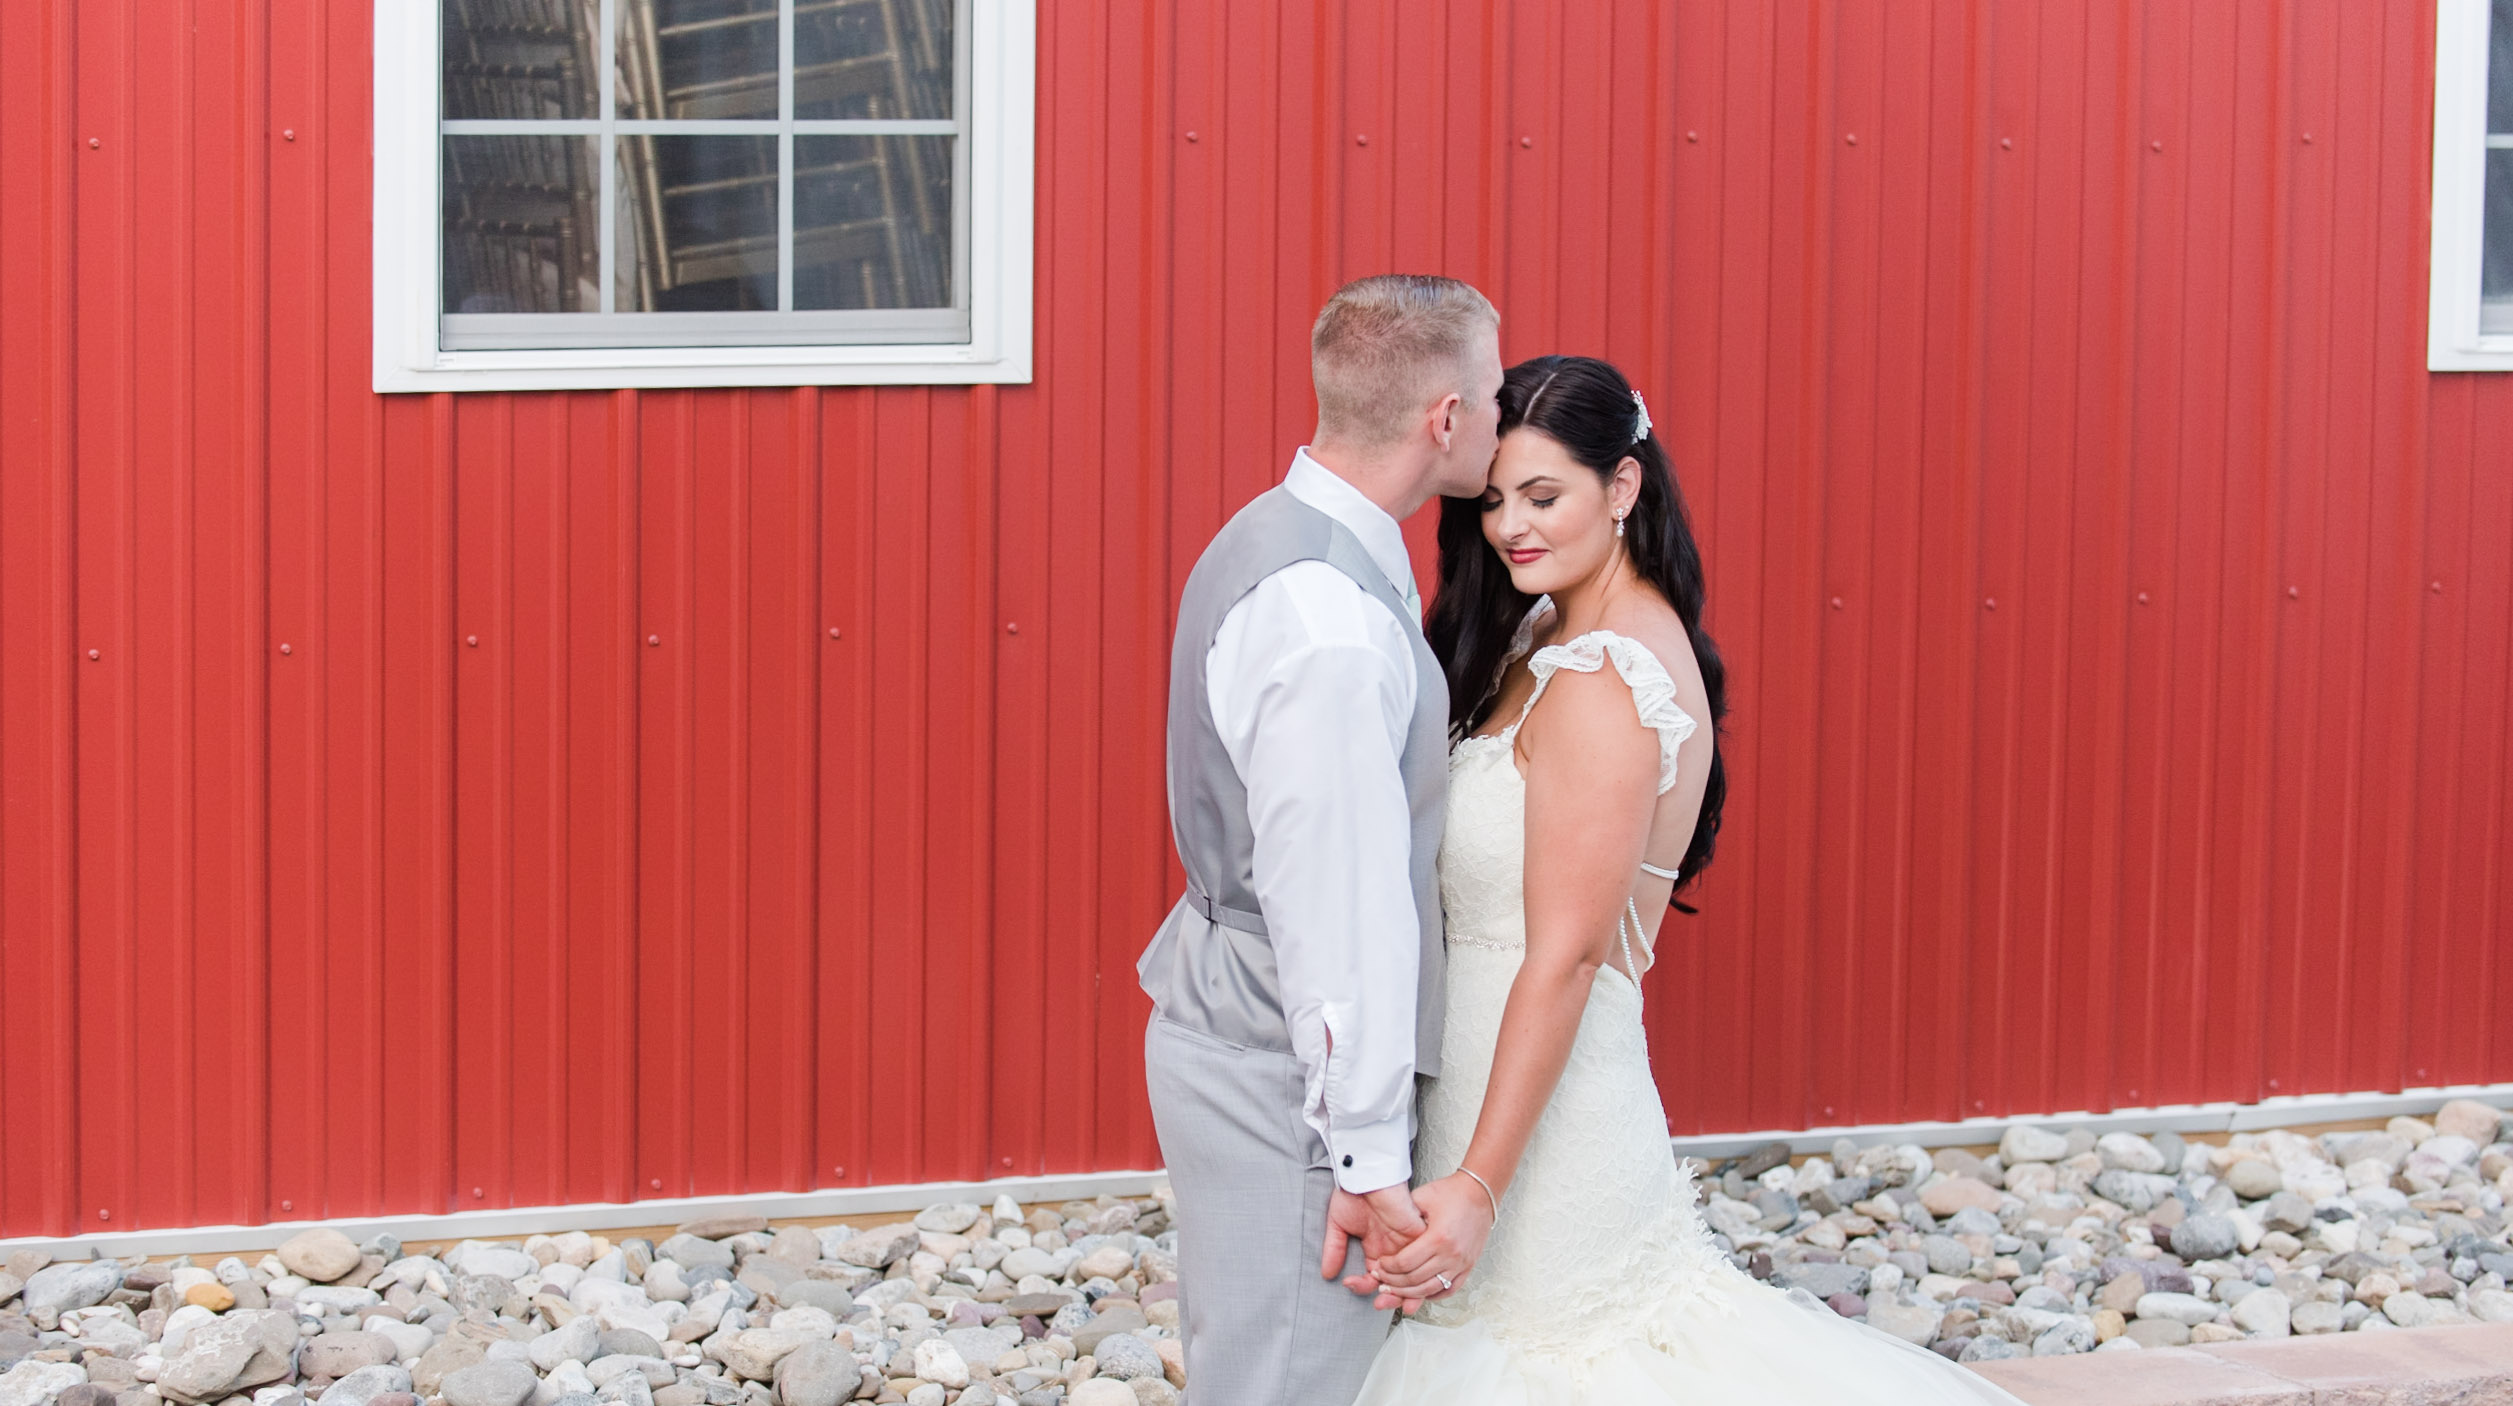 Romantic_Rustic_Wedding_Photographer_Barn_on_Bridge_Collegeville_Pennsylvania_Photographer-4